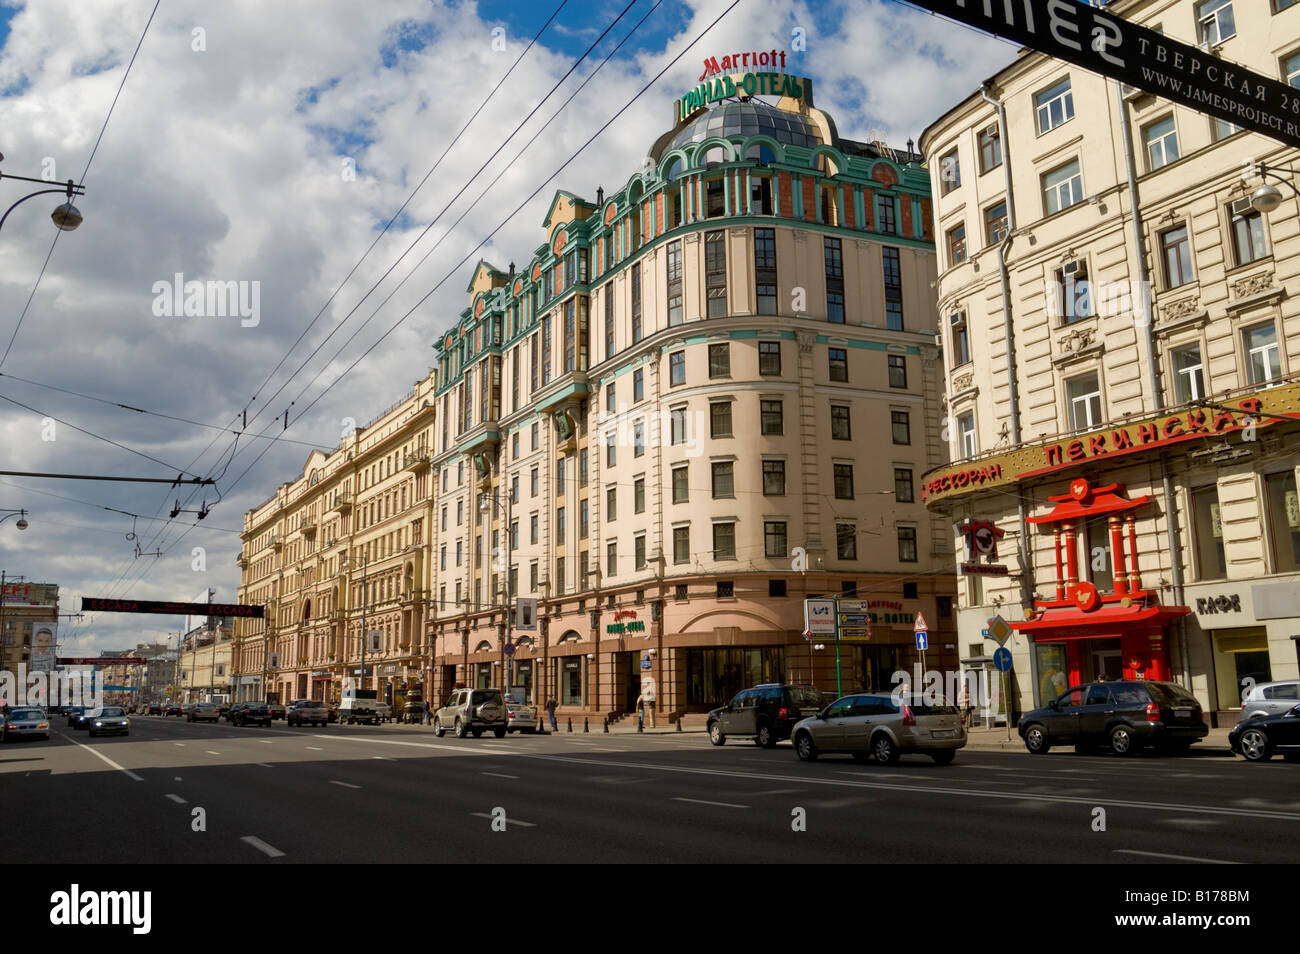 Marriott Grand Hotel In Moscow Stock Photo Alamy